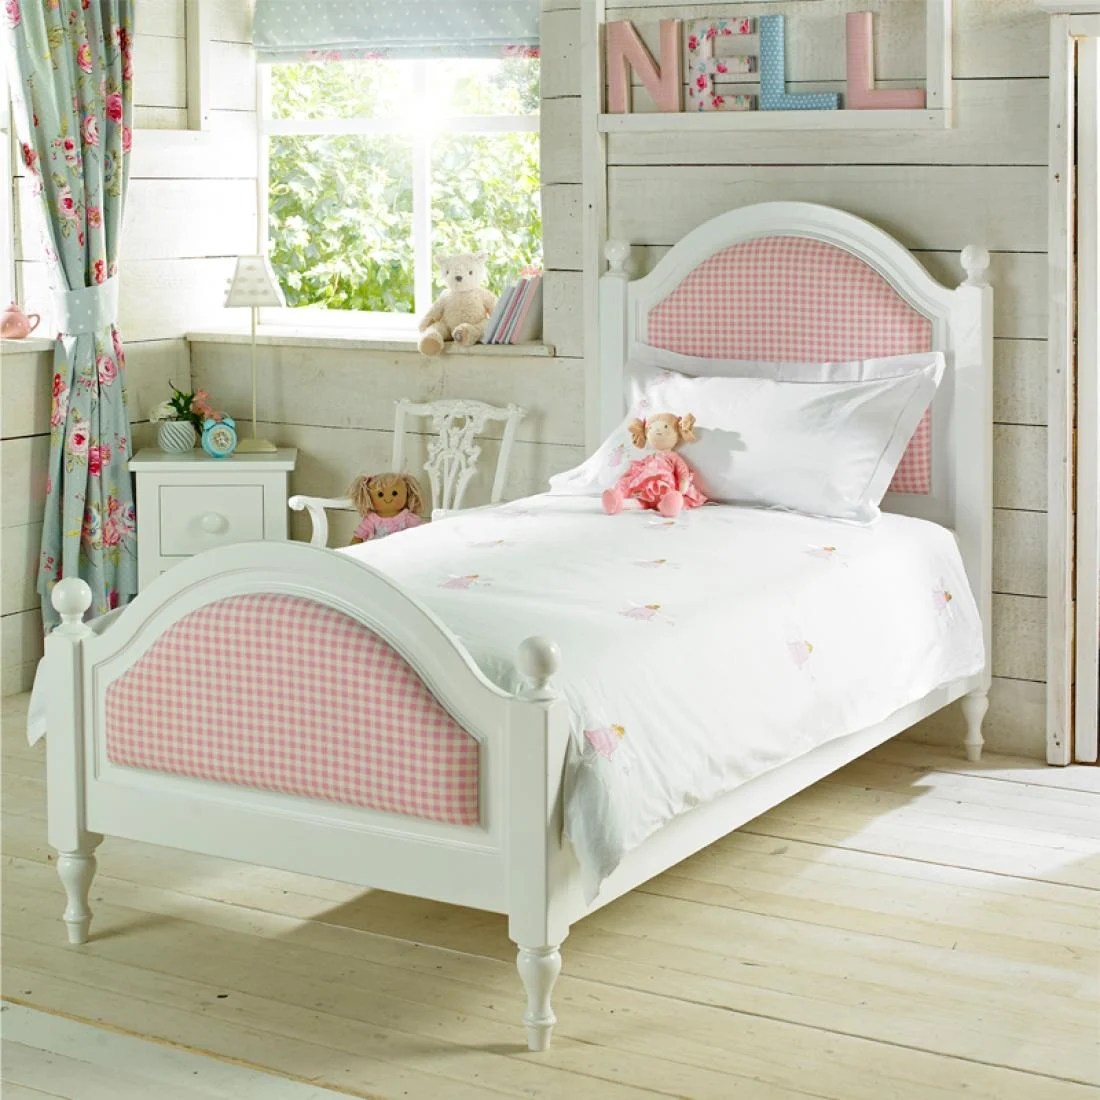 Single Beds For Kids Sammy Girls Bed Childrens Bedroom Furniture Uk